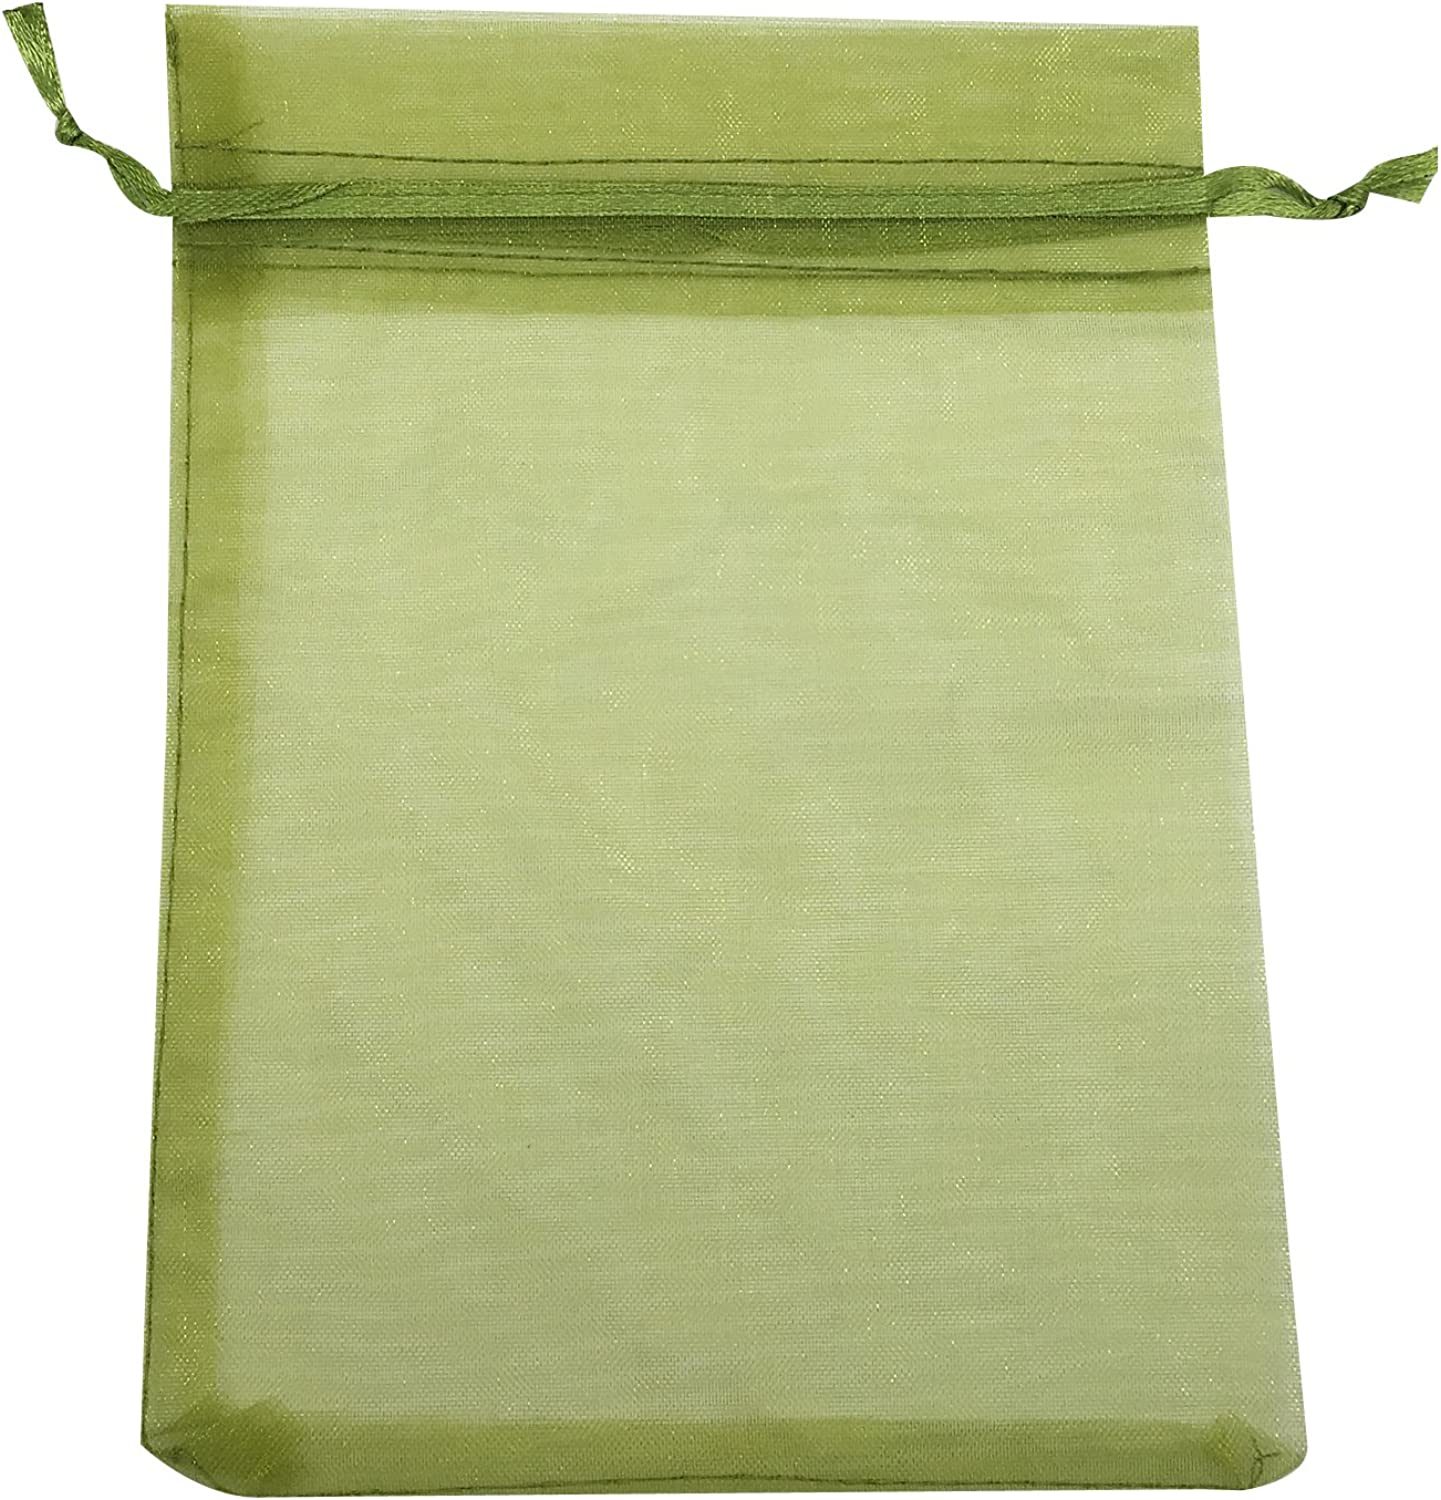 SUNGULF 50pcs Organza Pouch Bag Drawstring 5 x7  13x18cm Strong Gift Candy B6ag Jewelry Party Wedding Favor (Moss Green)